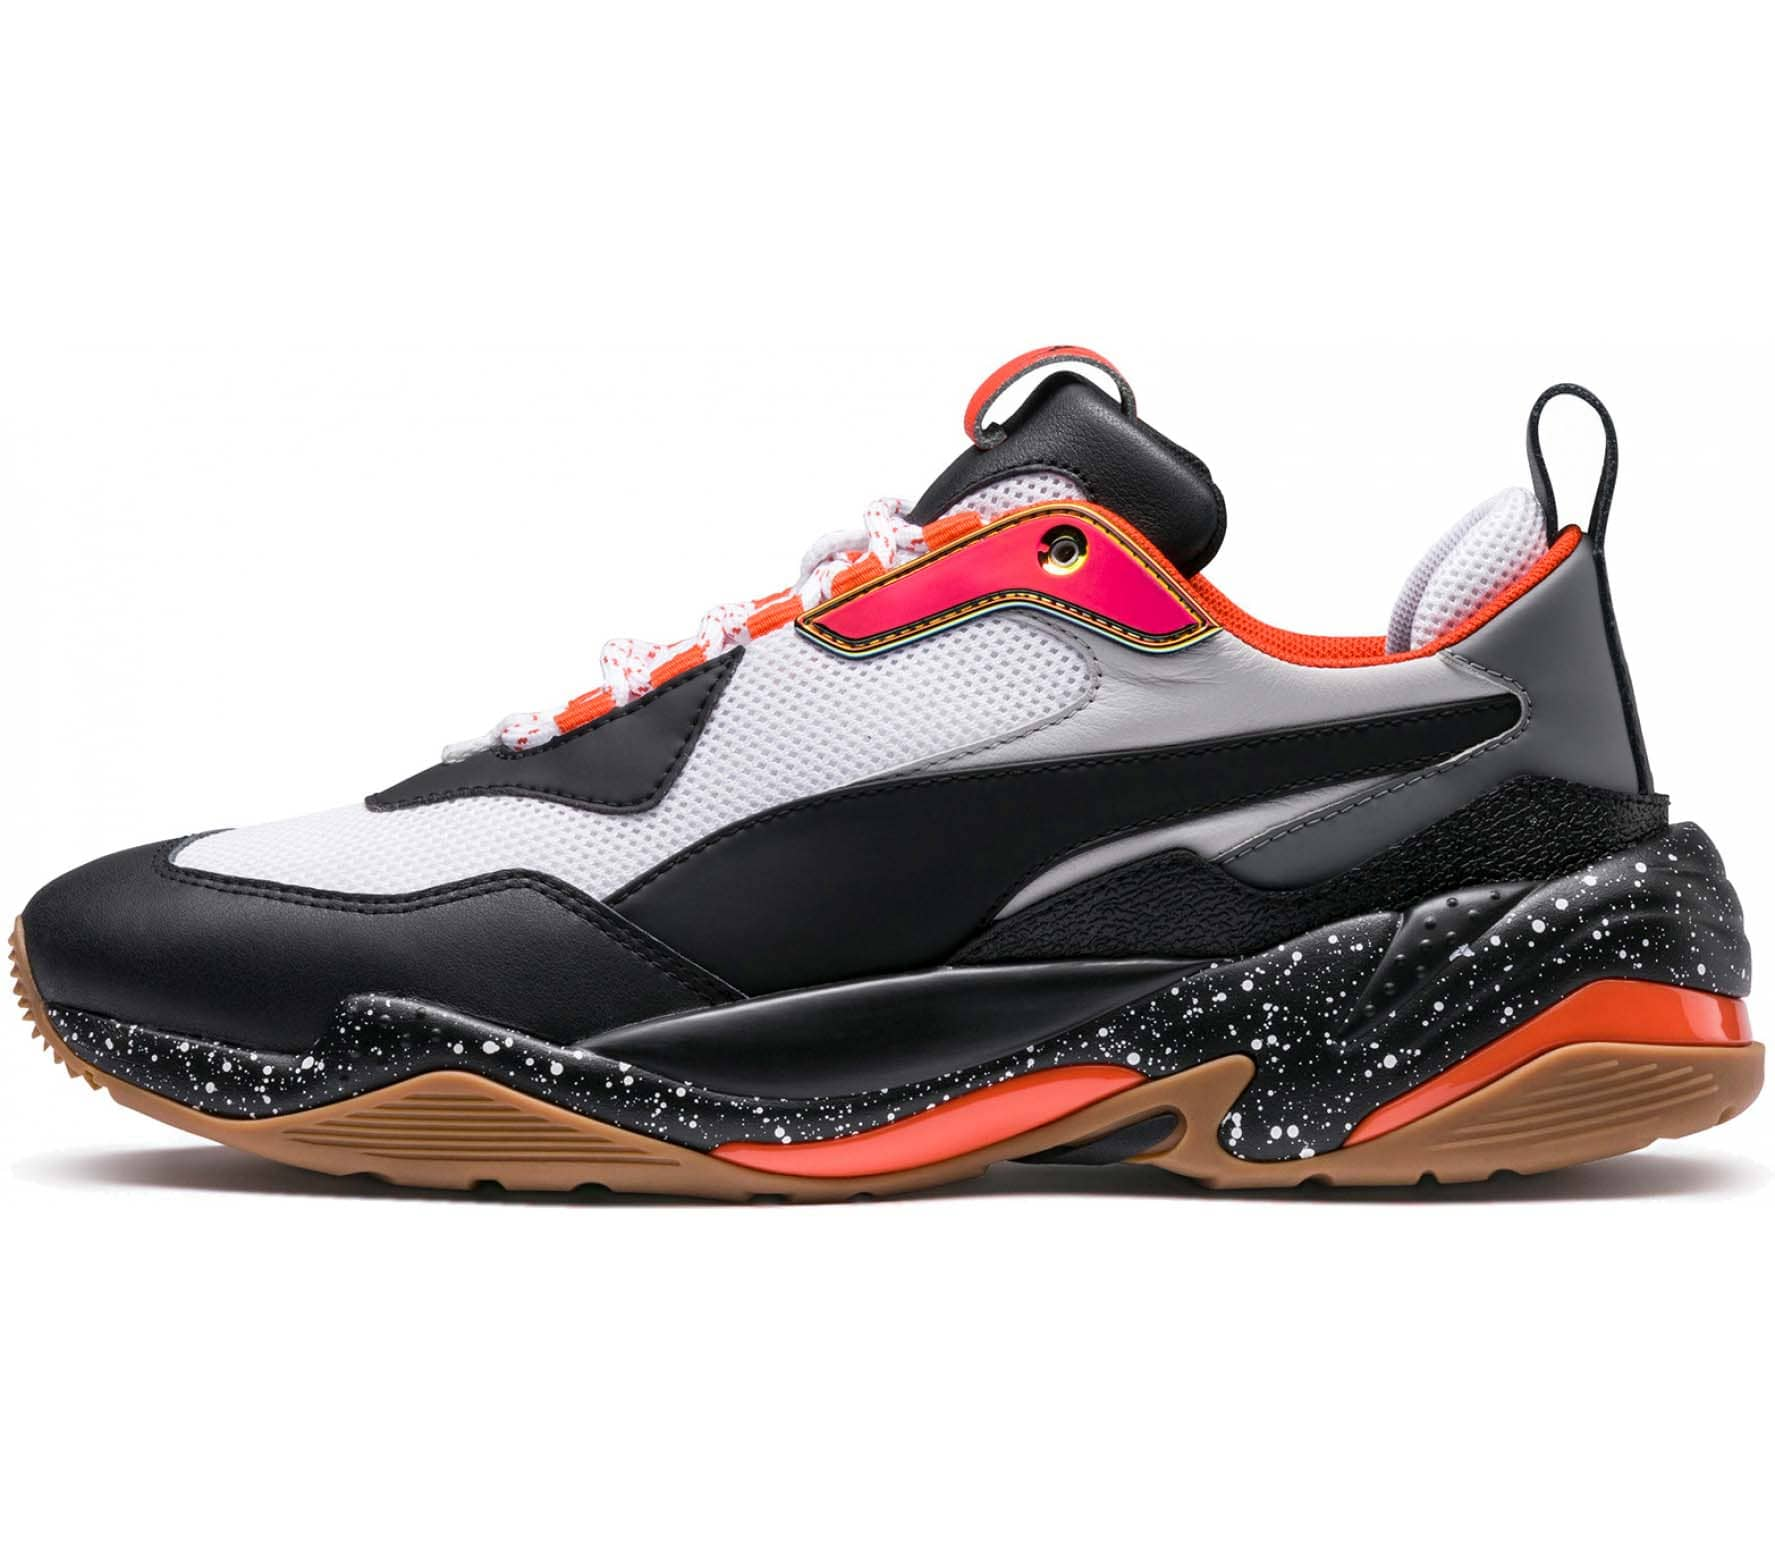 08abcd297cf3 Puma Thunder Electric trainers (multicoloured) online kaufen